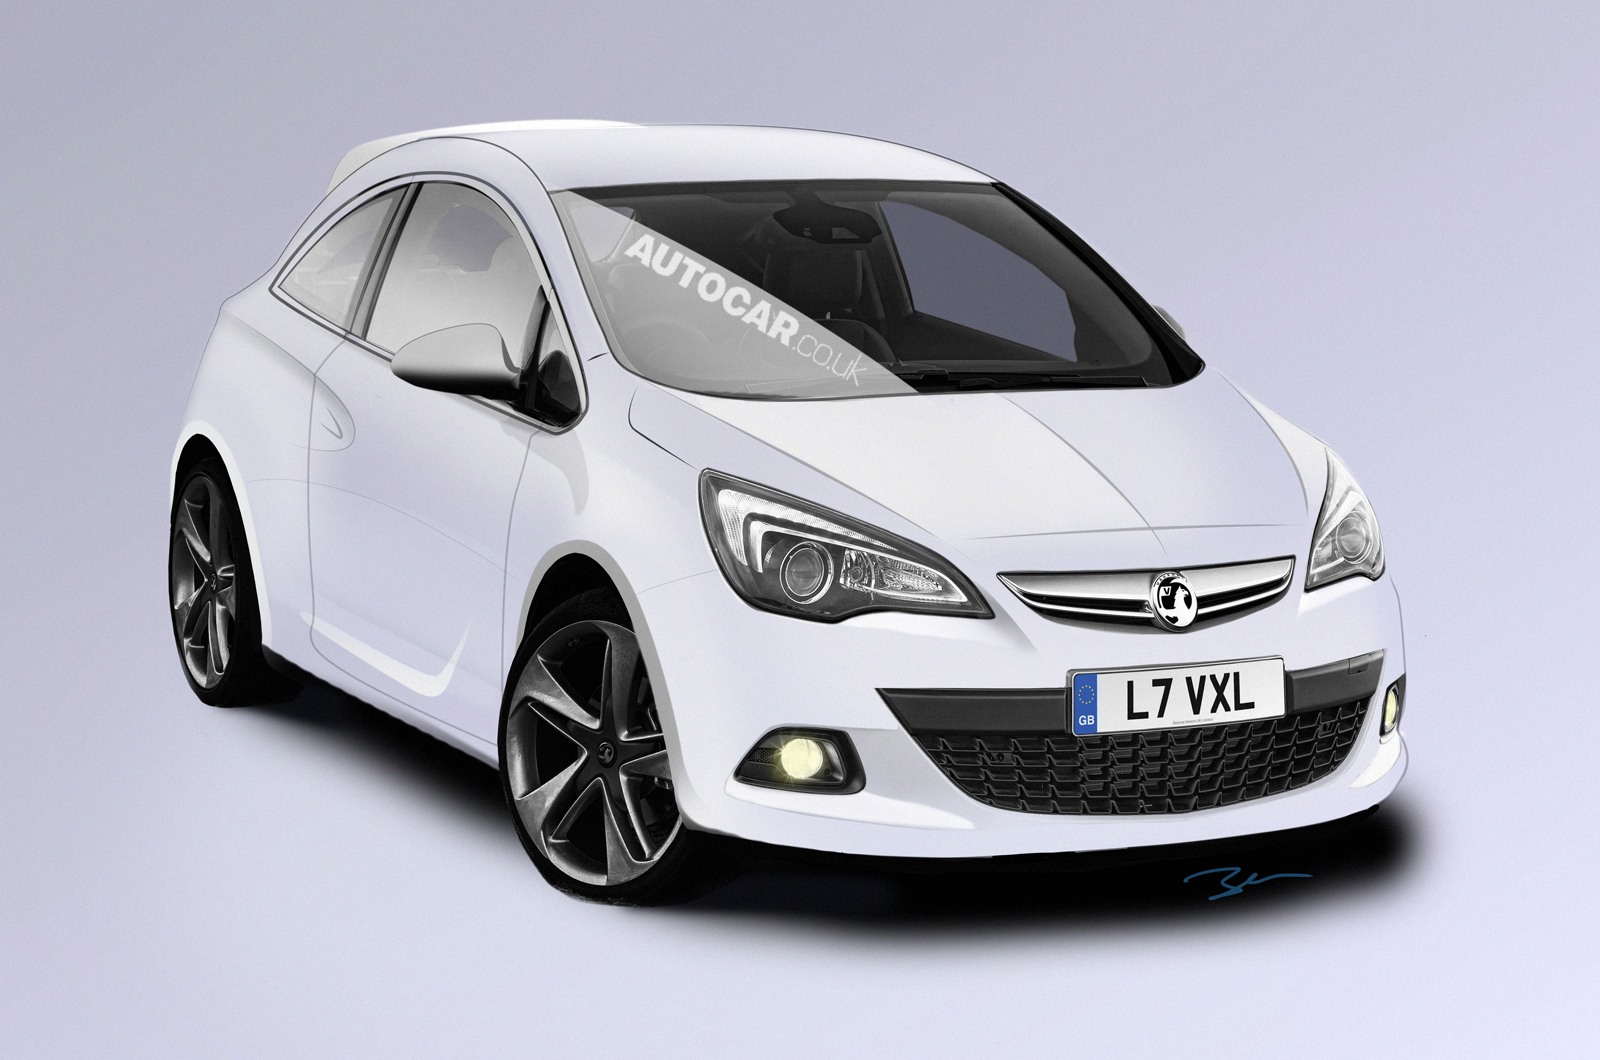 New Corsa Will Get Astra Coup Looks Autocar Vauxhall Small Cars